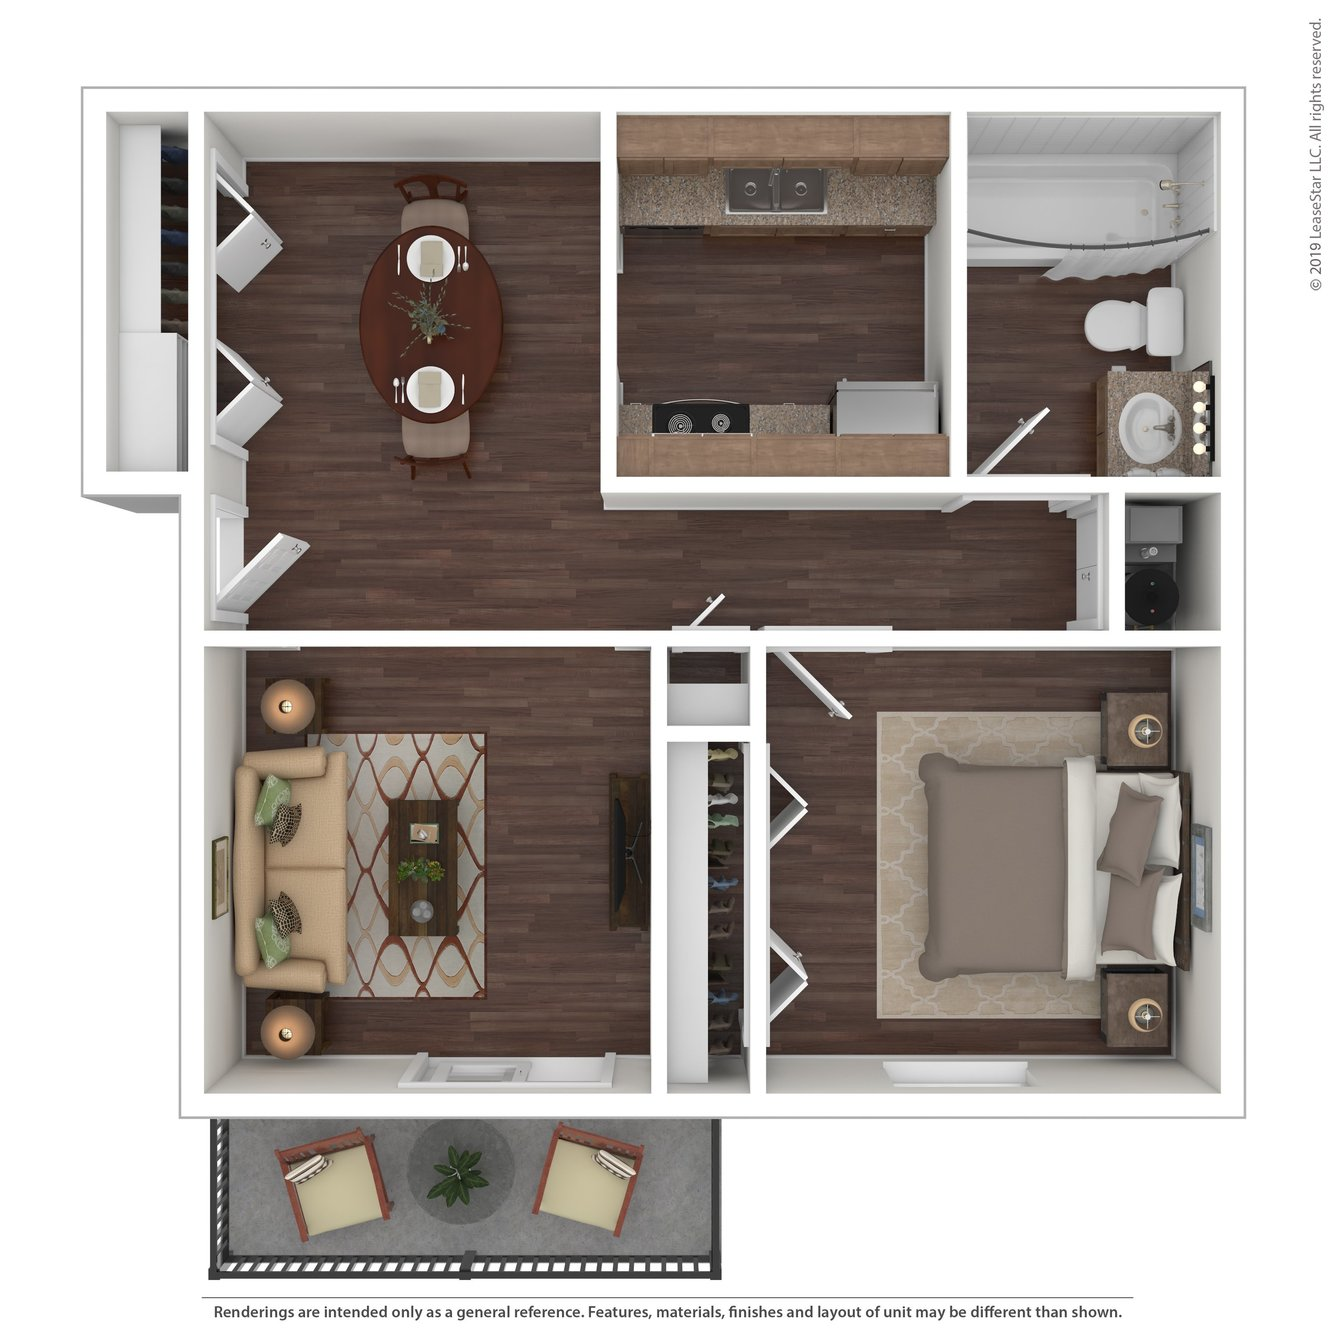 English Village Indianapolis, IN   Welcome Home on 750 square feet apartment plans, 2 bedroom garage apartment plans, apartment design plans, townhouse with garage plans, large mansion layout plans, 5 bedroom 3 bath floor plans, townhouse apartment building, two apartments floor plans, townhouse apartment layout,